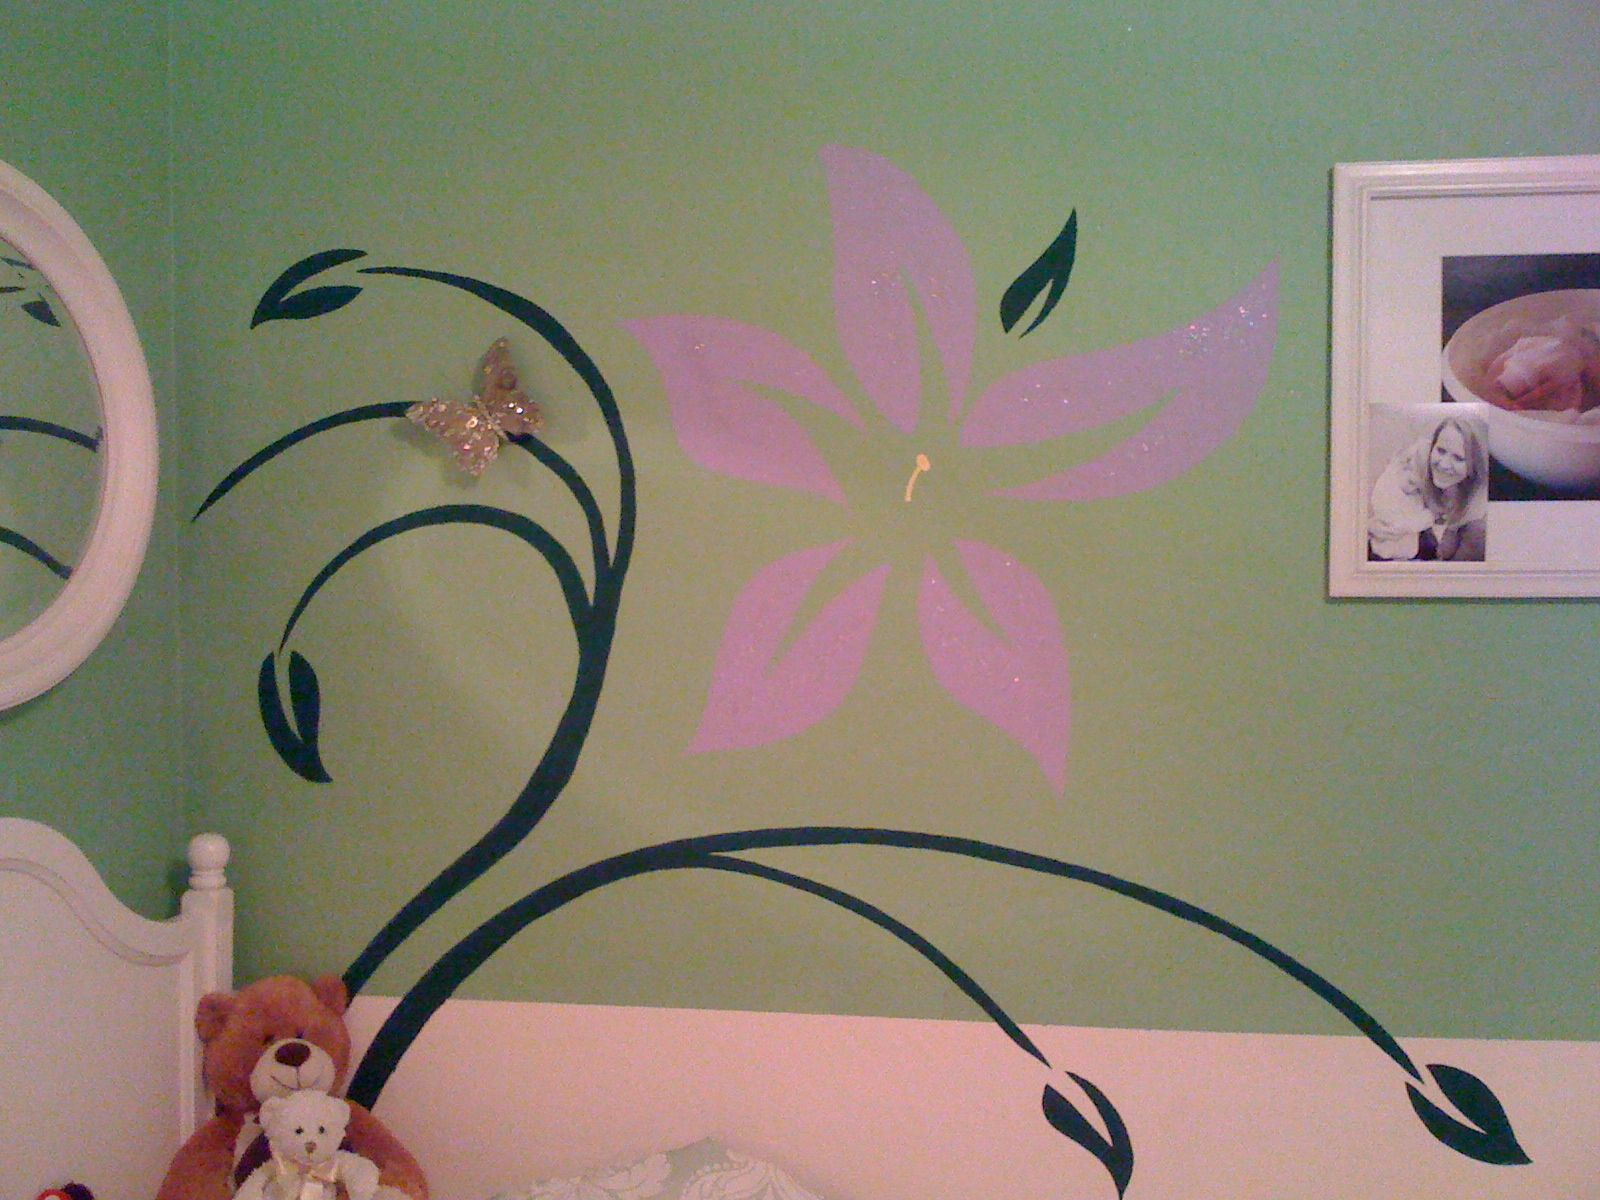 Tinker bell theme room